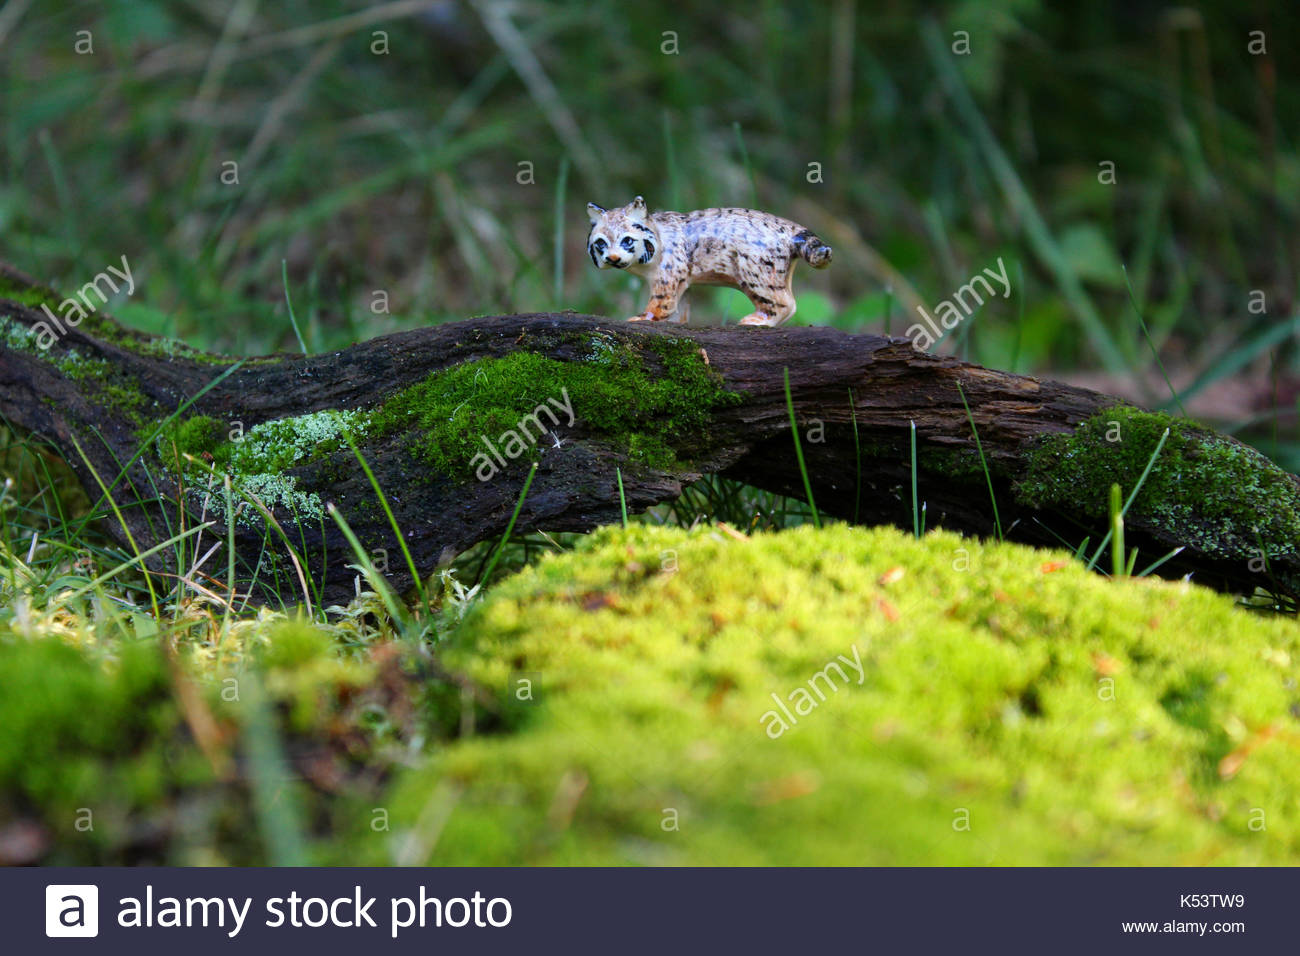 Mystical Miniature Bobcat - Stock Image